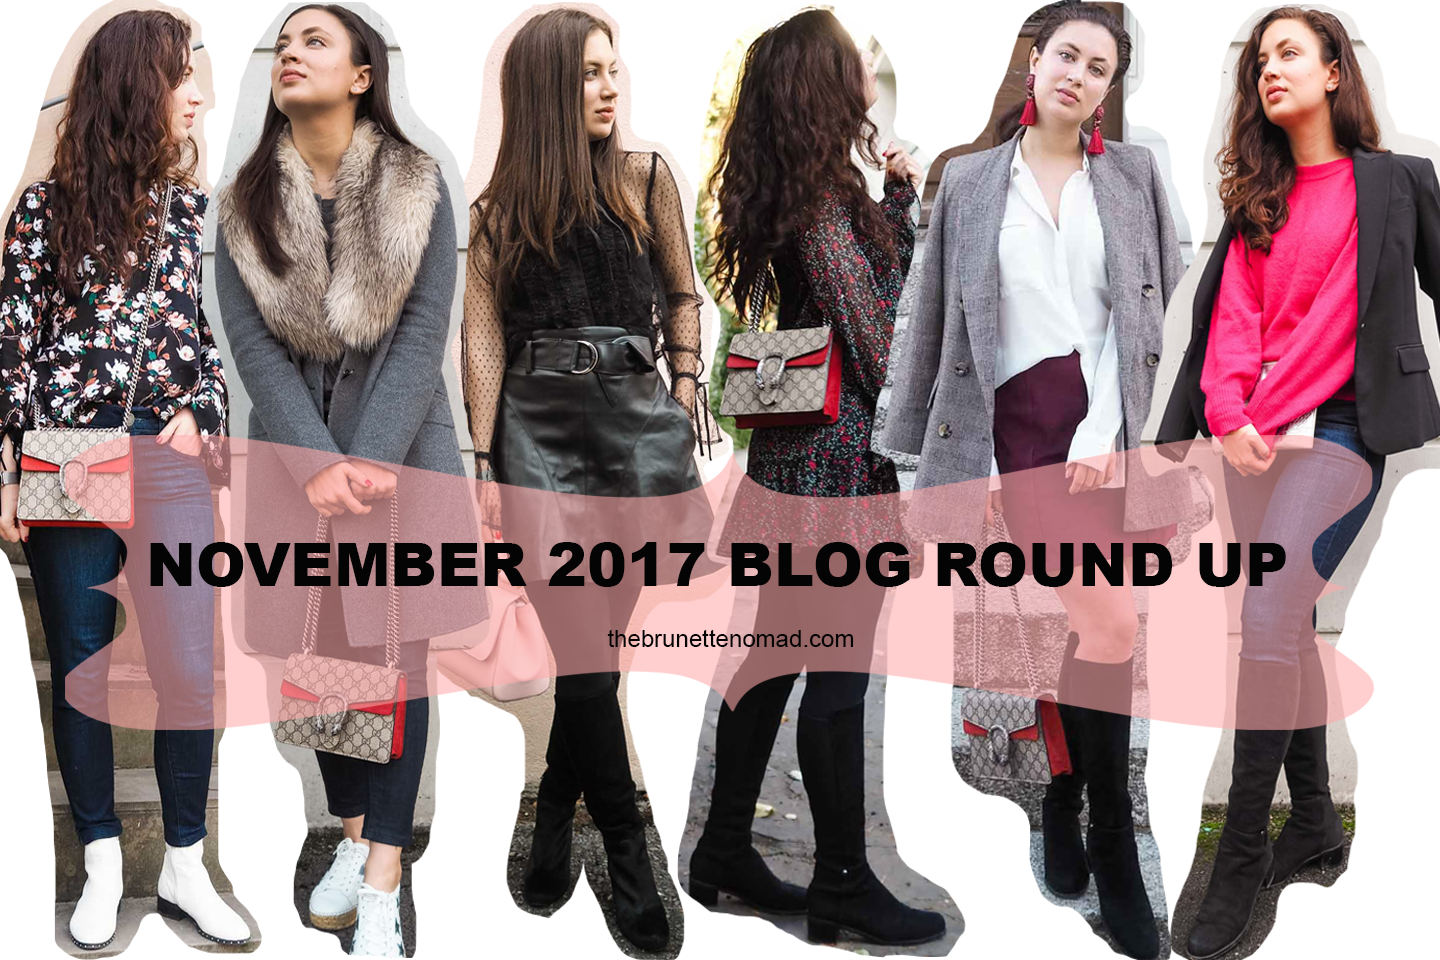 November 2017 Blog Round - The Brunette Nomad, fashion blog